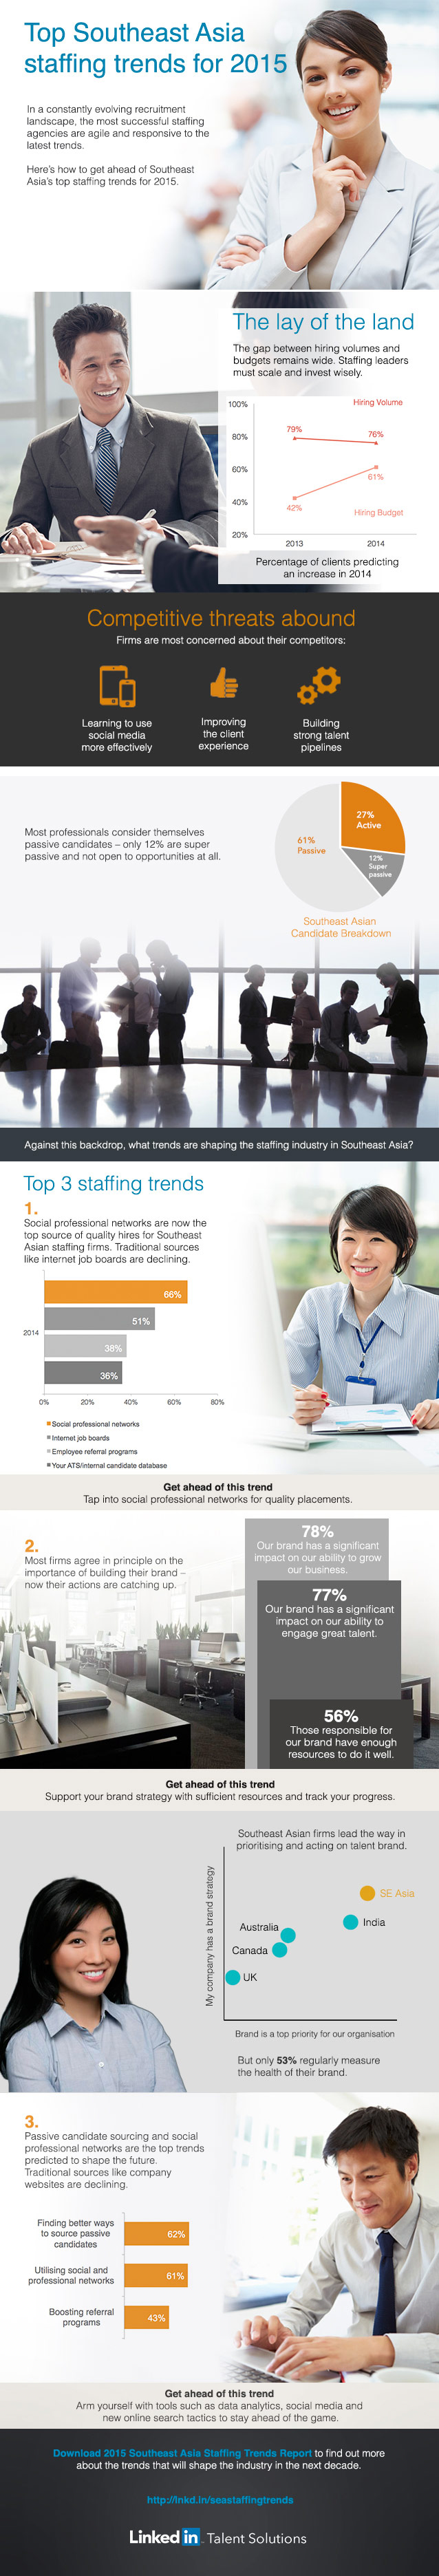 staffing trends southeast asia